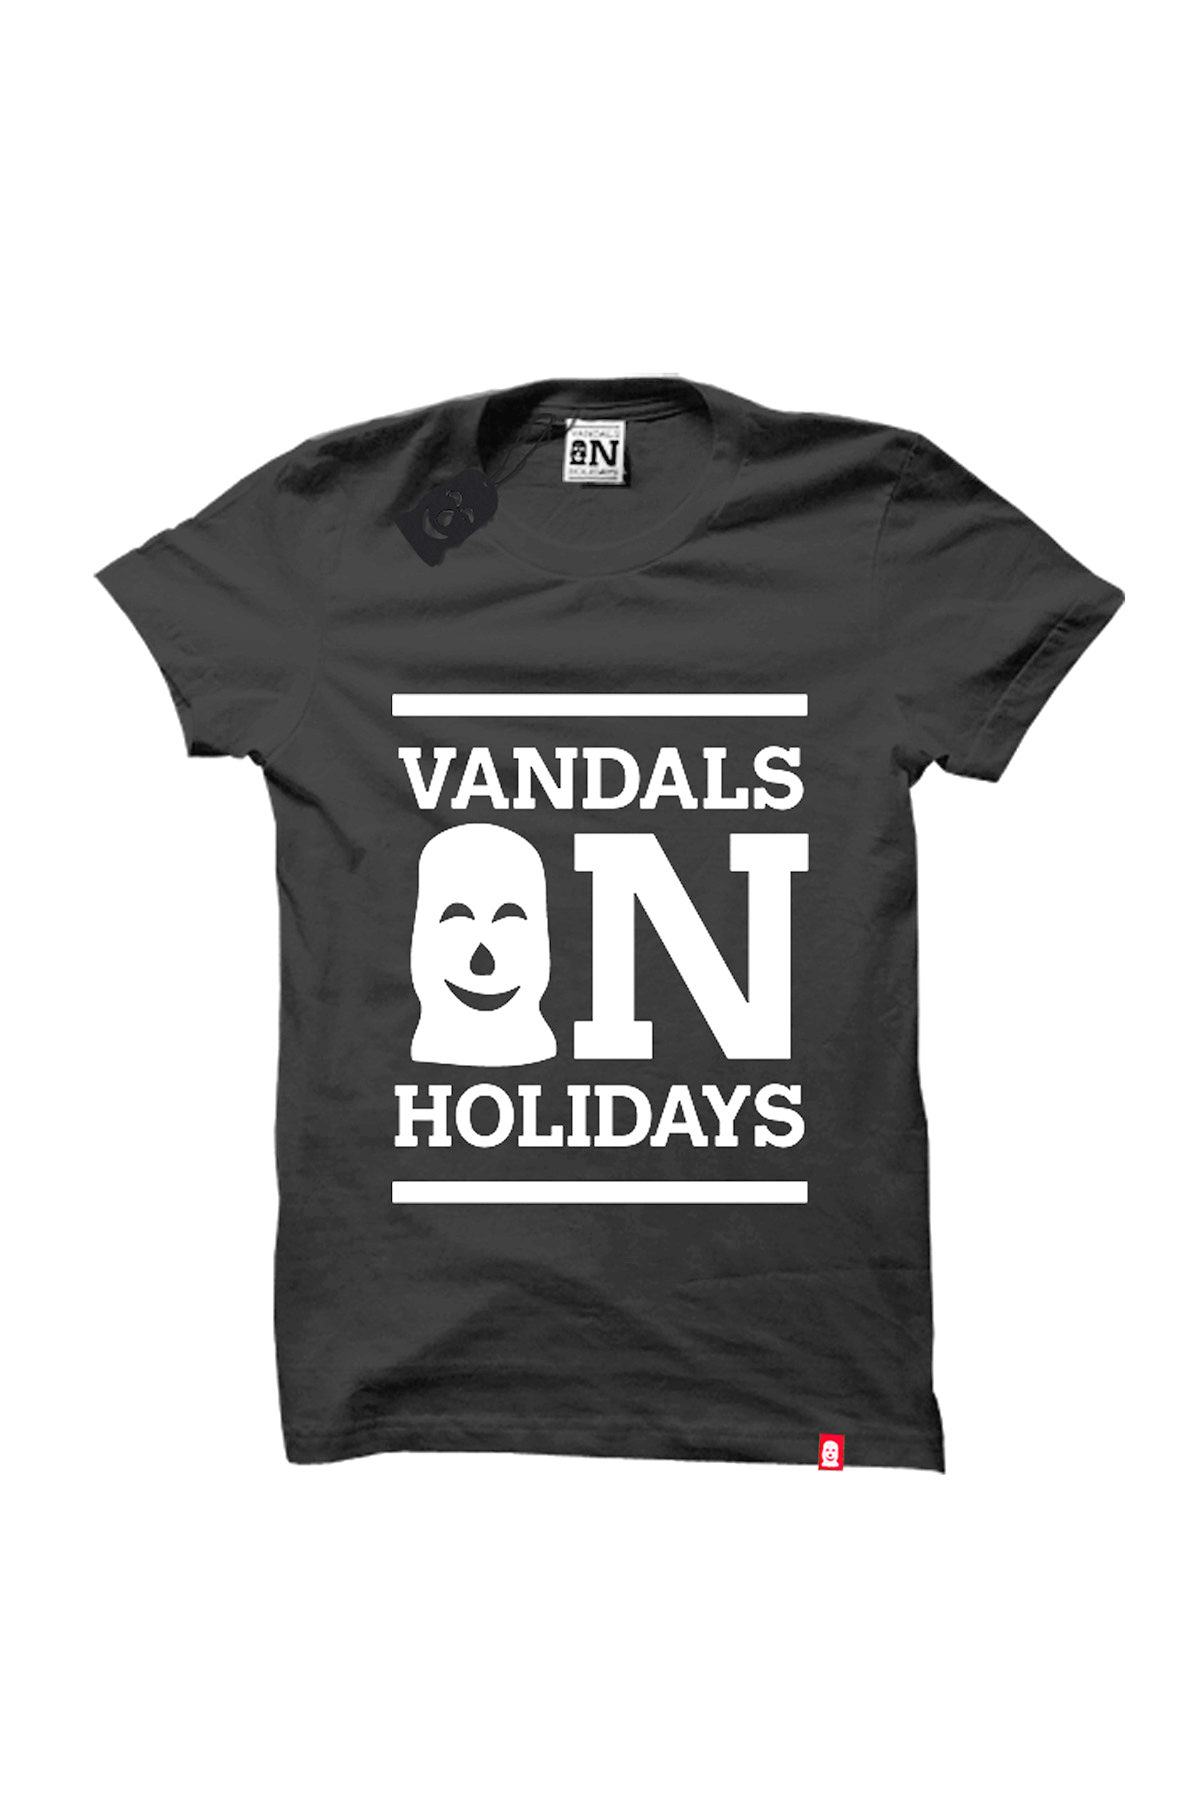 Vandals On Holidays CLASSIC LOGO Dark Grey T-Shirt